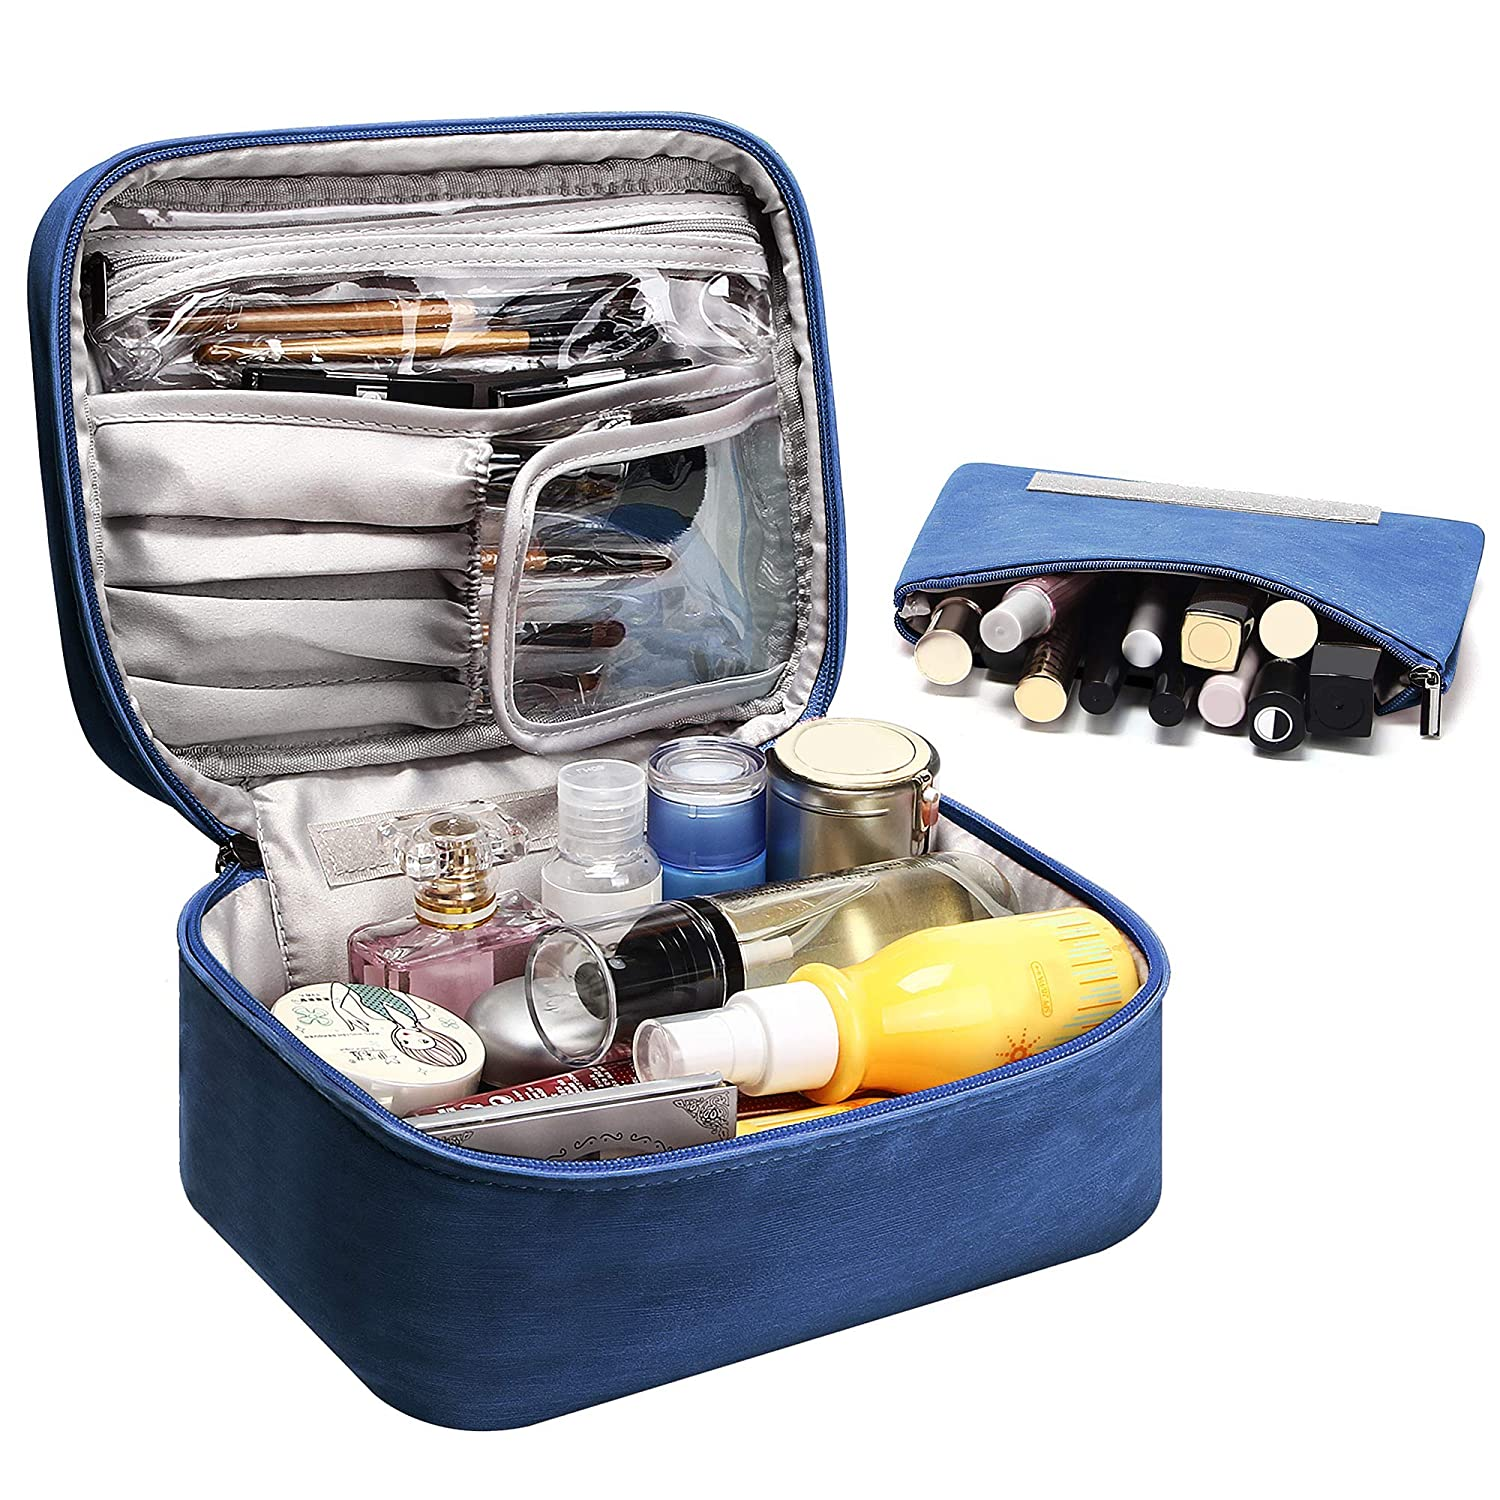 Travel Cosmetic Bag Portable Makeup Bruches Case Waterproof Toiletries Organizer Bag With An Extra Removable Zipper Pouch